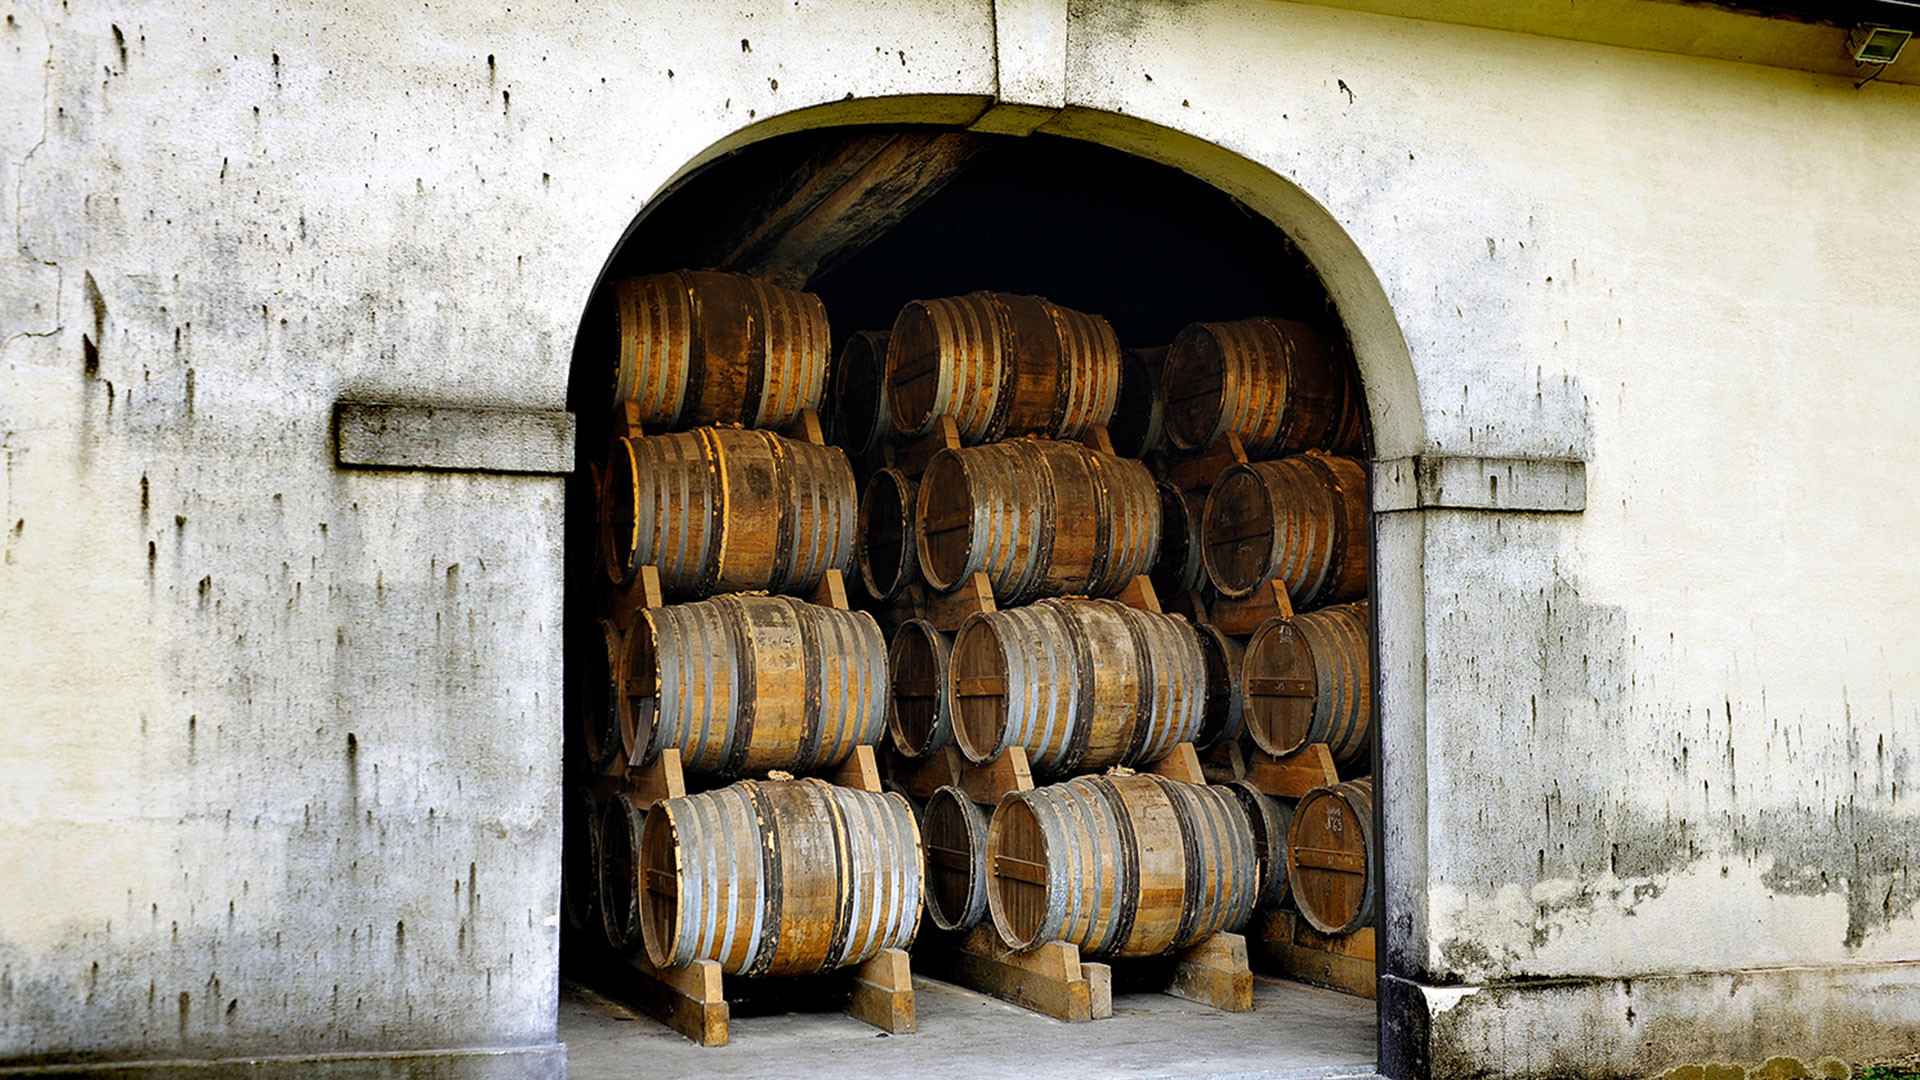 The barrel room at ABK6